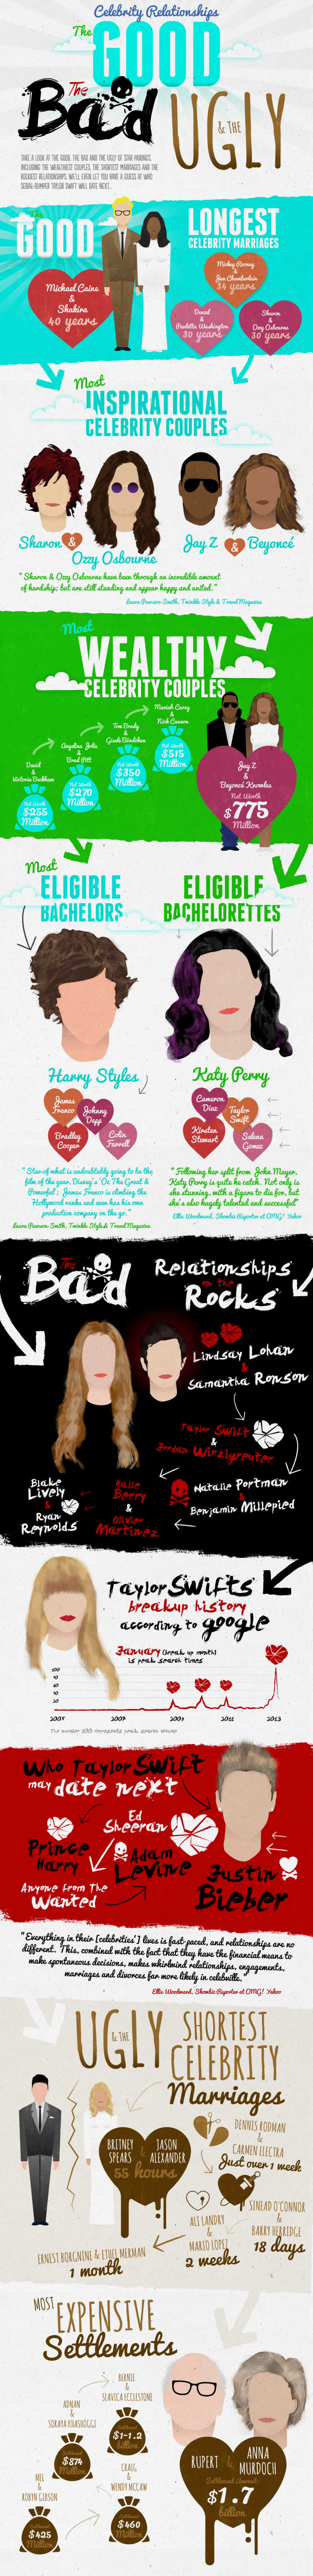 Celebrity Relationships: The Good, The Bad and The Ugly Infographic